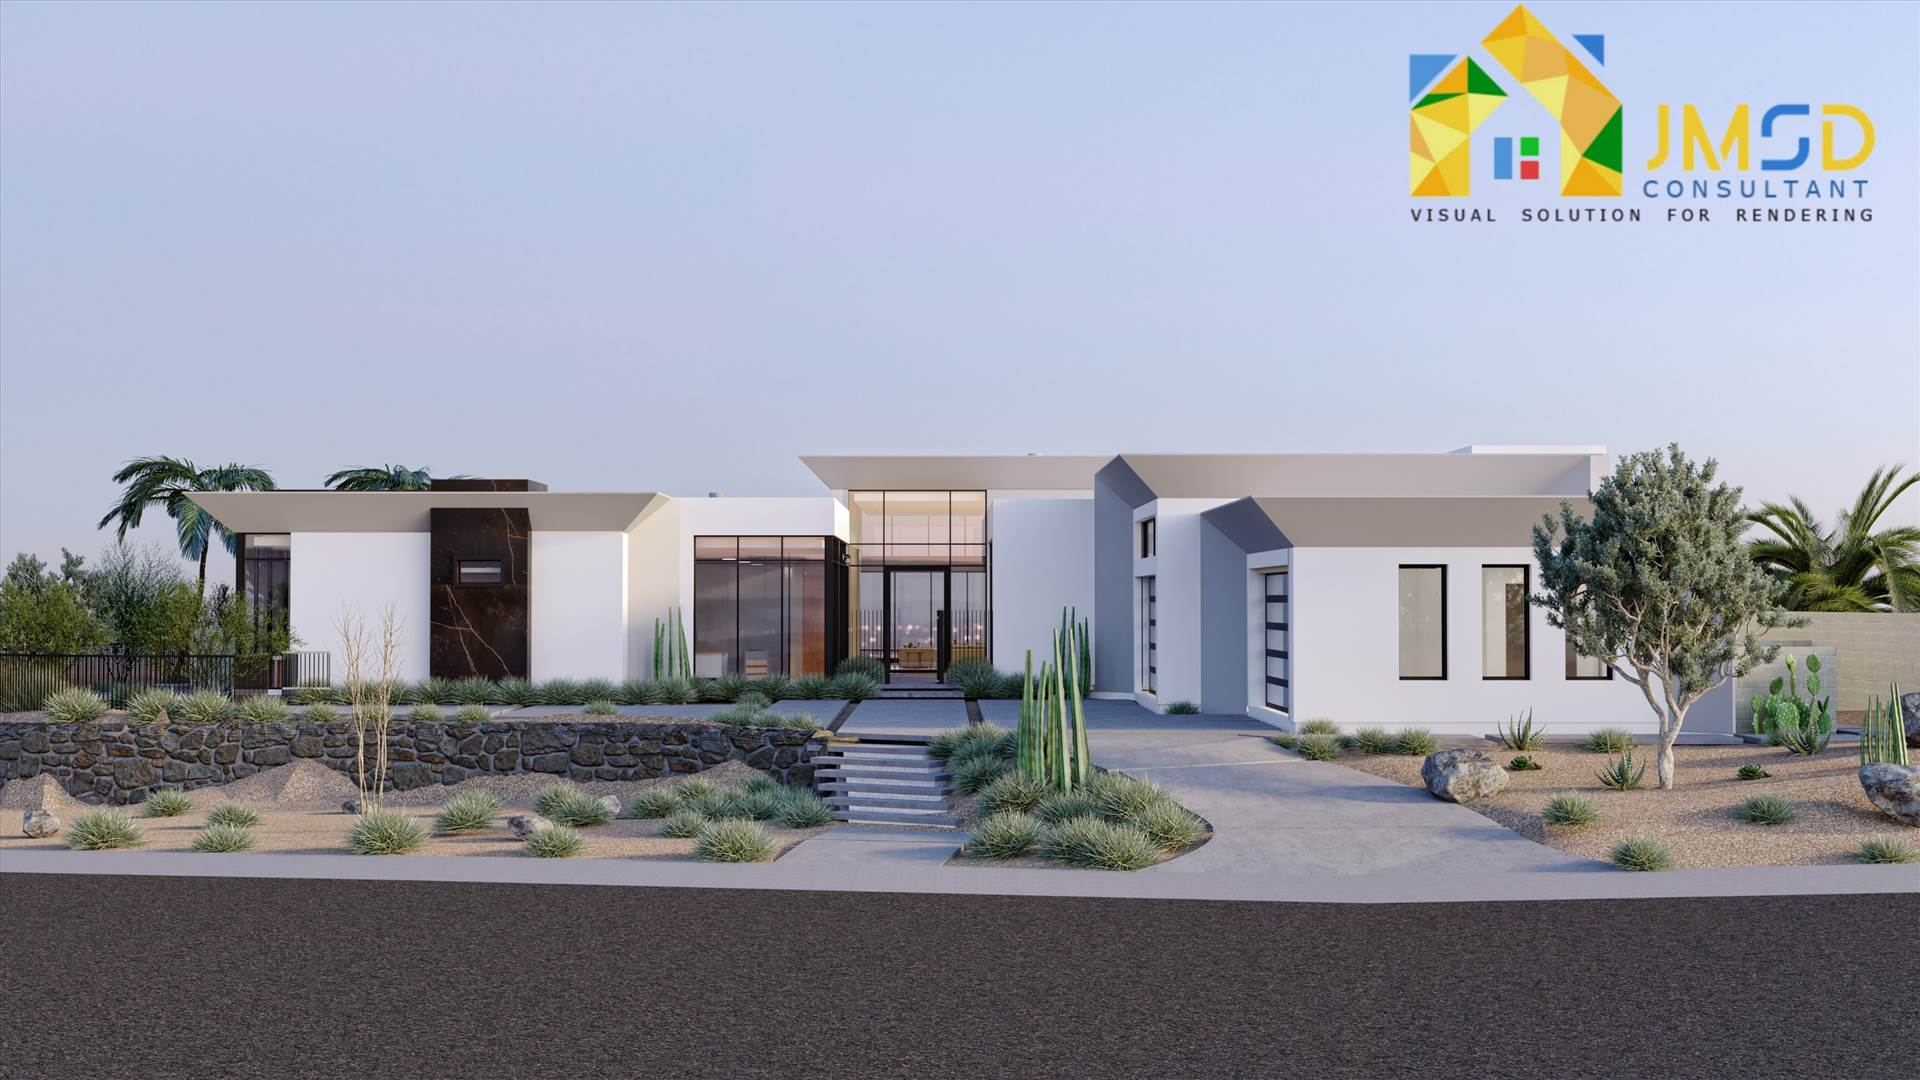 Architectural 3D Exterior Rendering Services For Villa Architectural 3D Exterior Rendering Services giving your ideas to New Life. 3D Exterior Rendering Services: A Perfect Brief of Property. by JMSDCONSULTANT